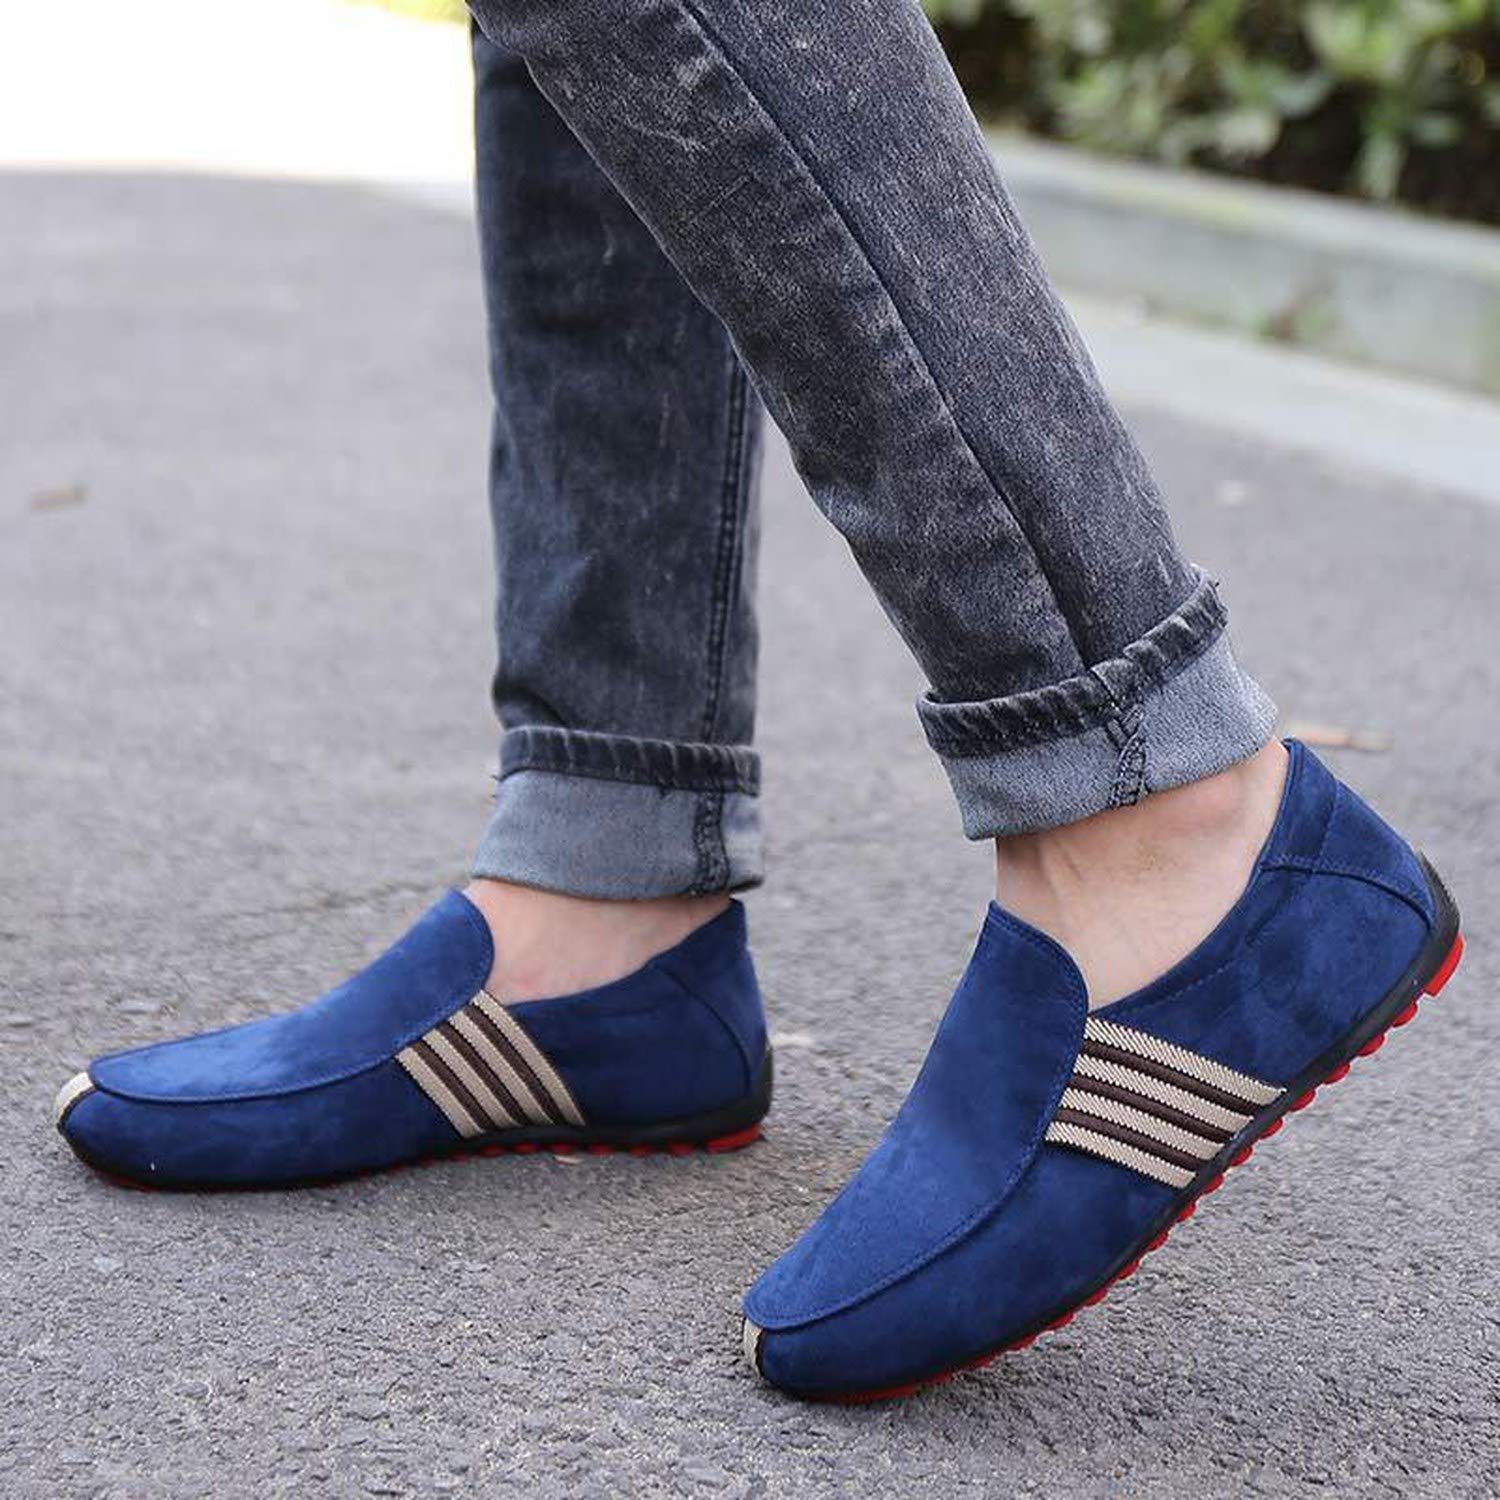 crazy-shop New Spring Men Suede Leather Loafers Driving Shoes Moccasins Summer Mens Casual Shoes Flat Breathable,Fabric Grey,7,Spain